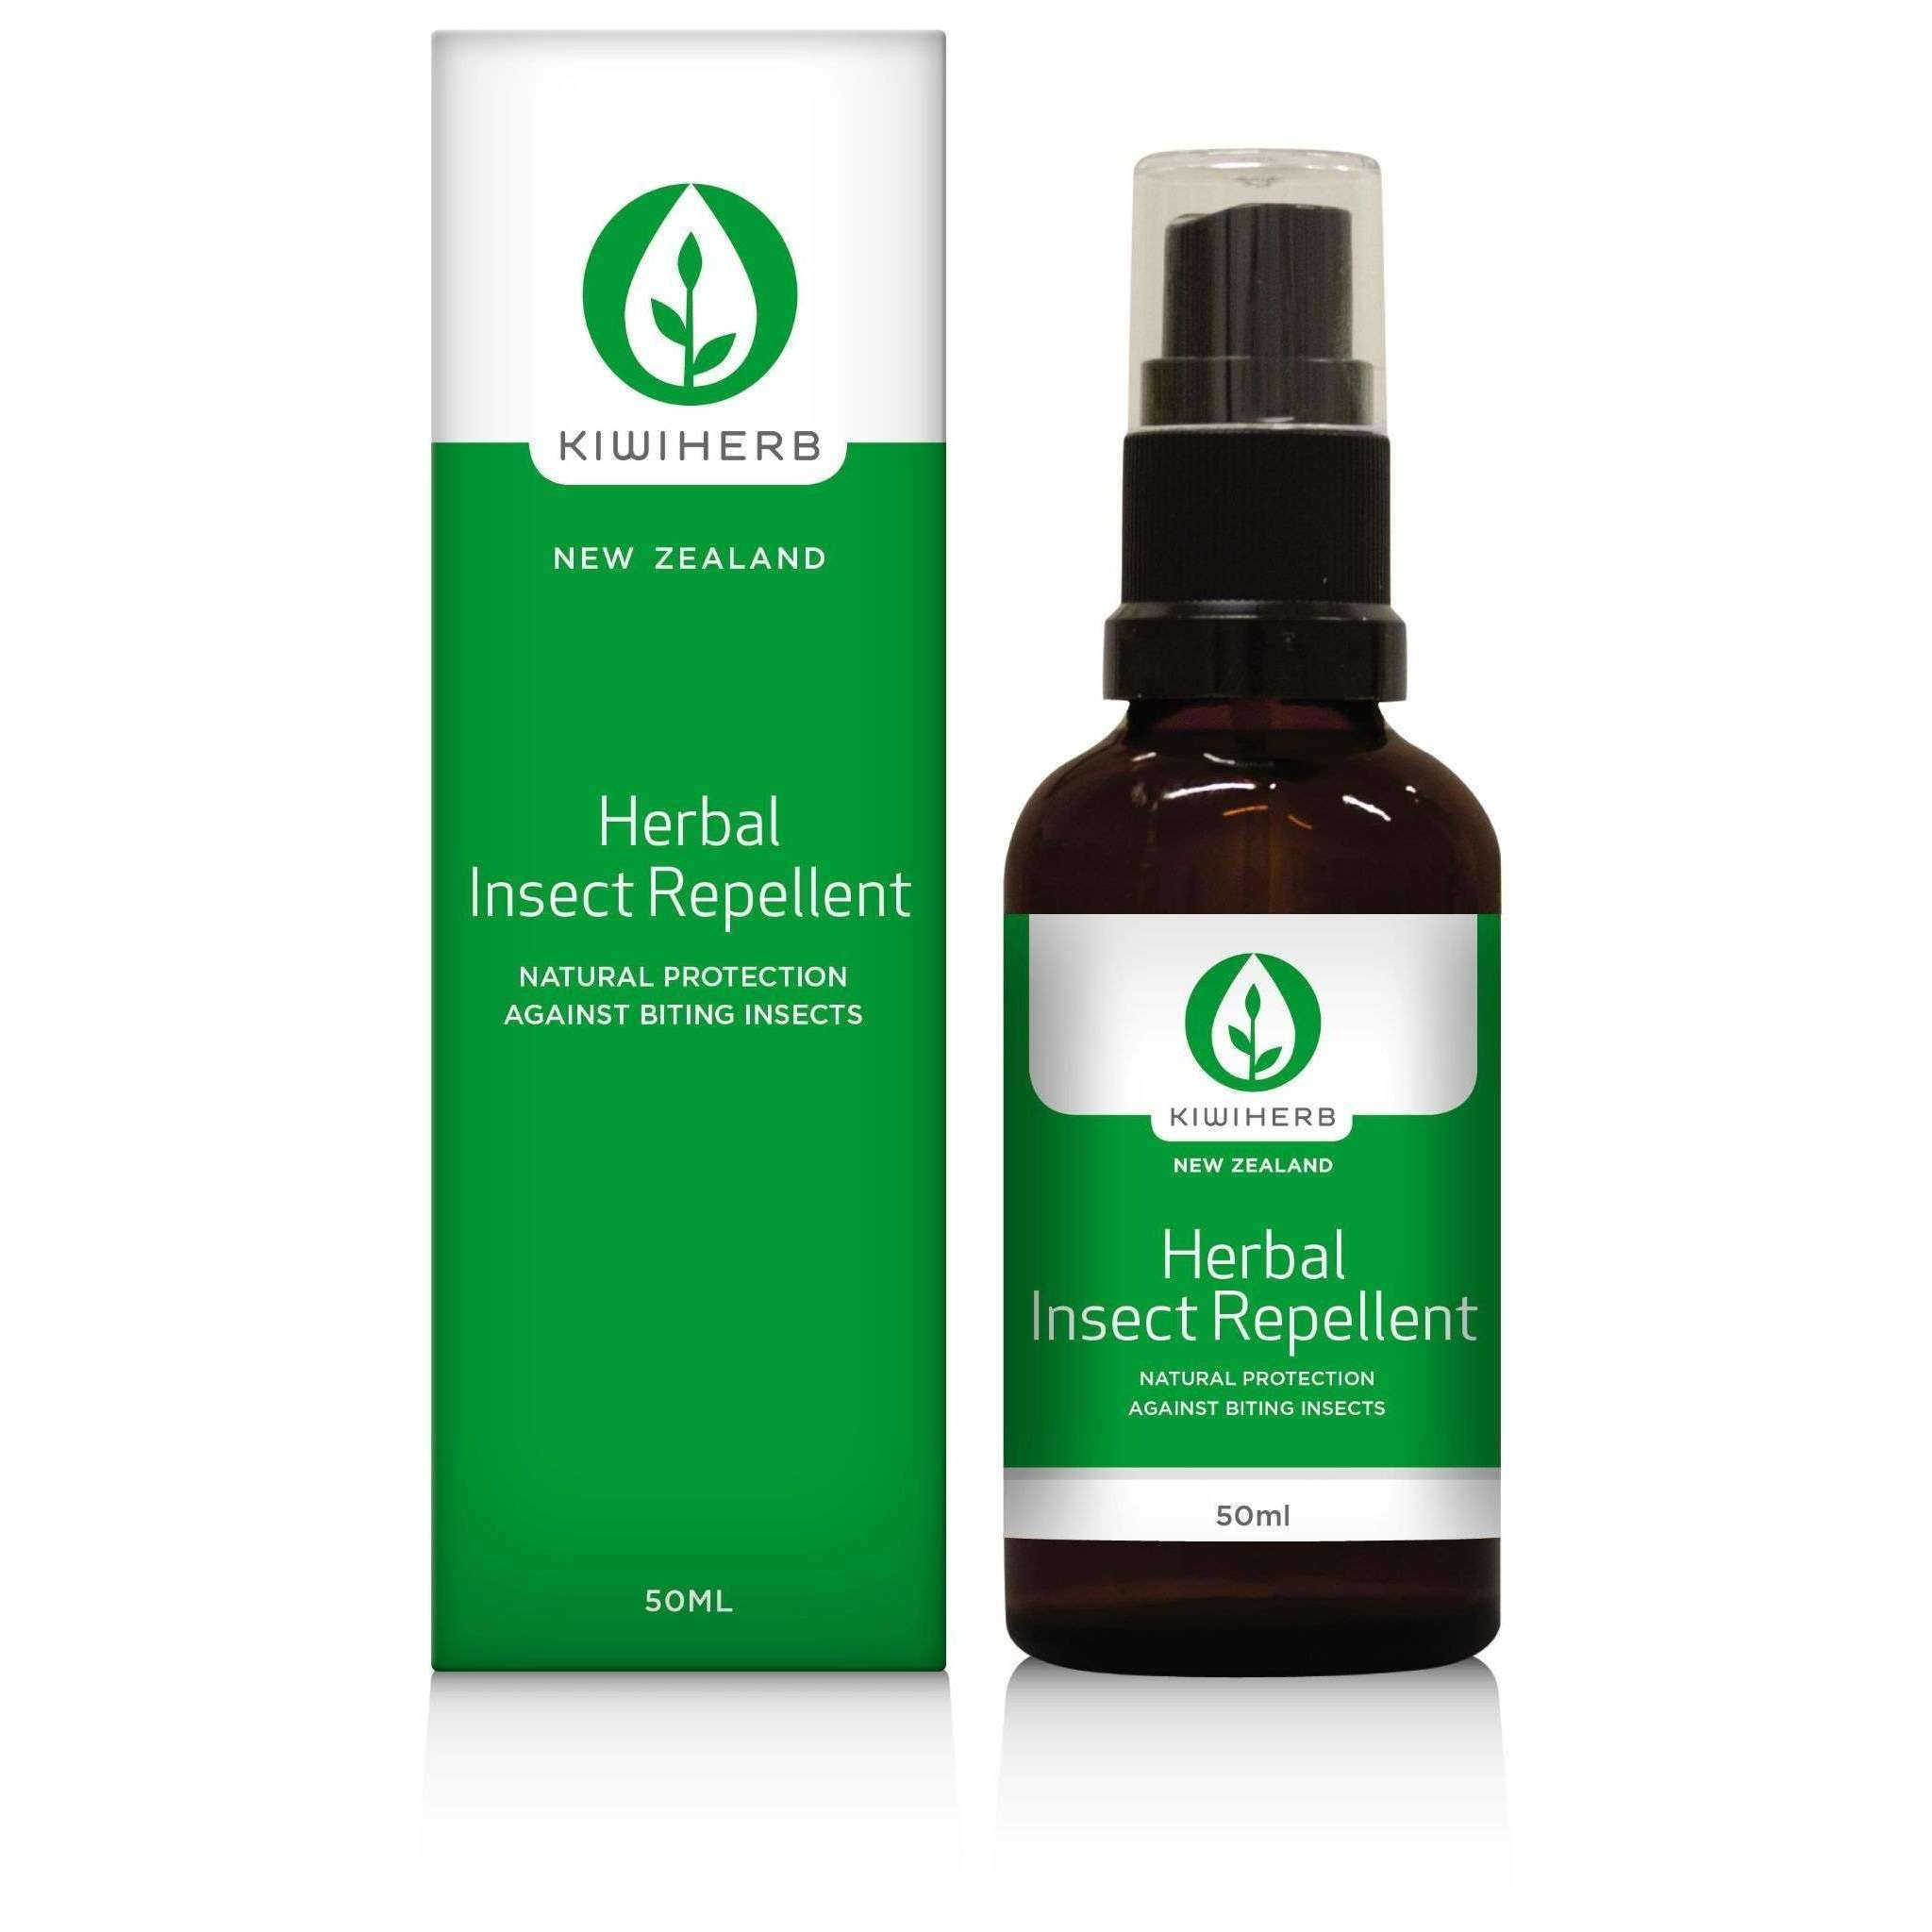 Kiwiherb Herbal Insect Repellent 50ml